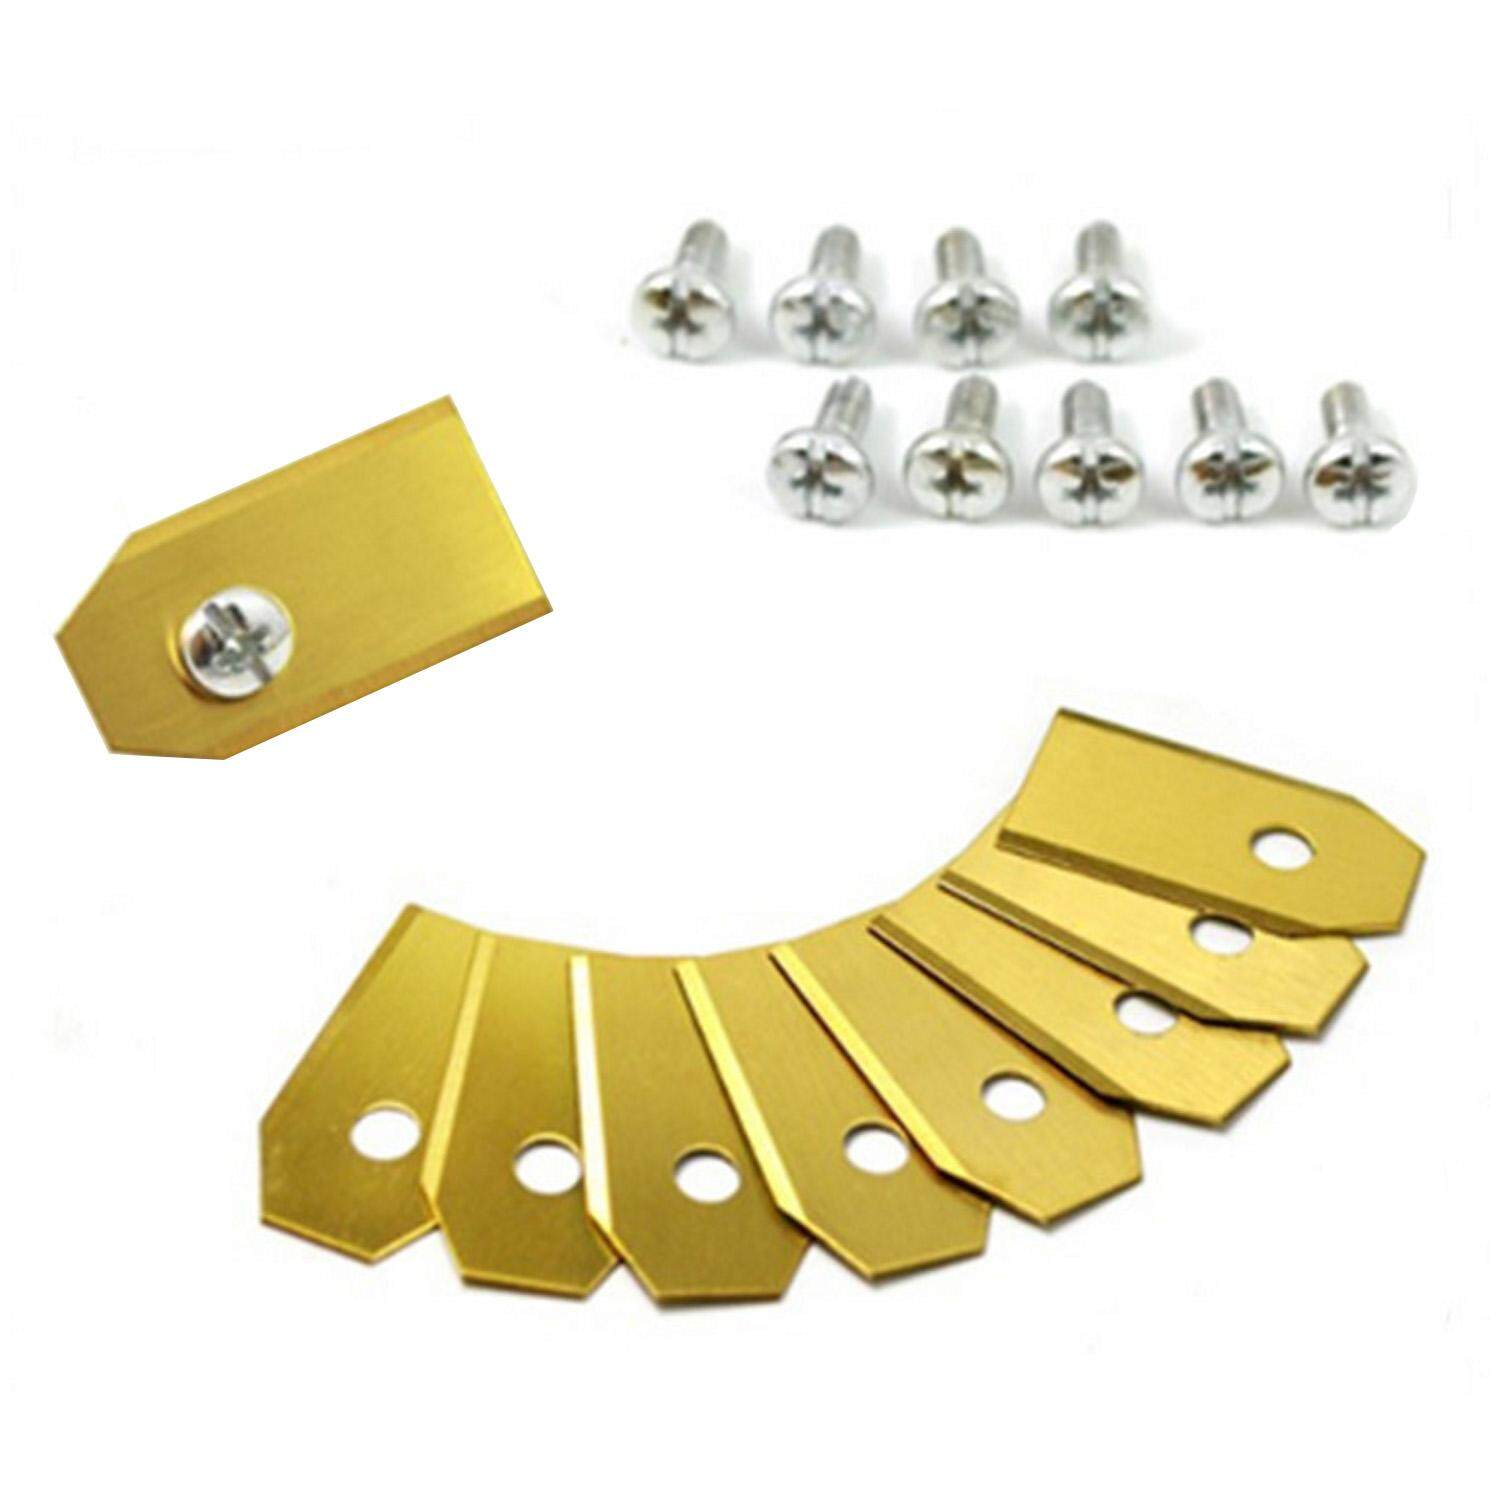 30pcs Anti Rust Stainless Steel Garden Mower Replacement Blade with Screws for Husqvarna Automower Gold